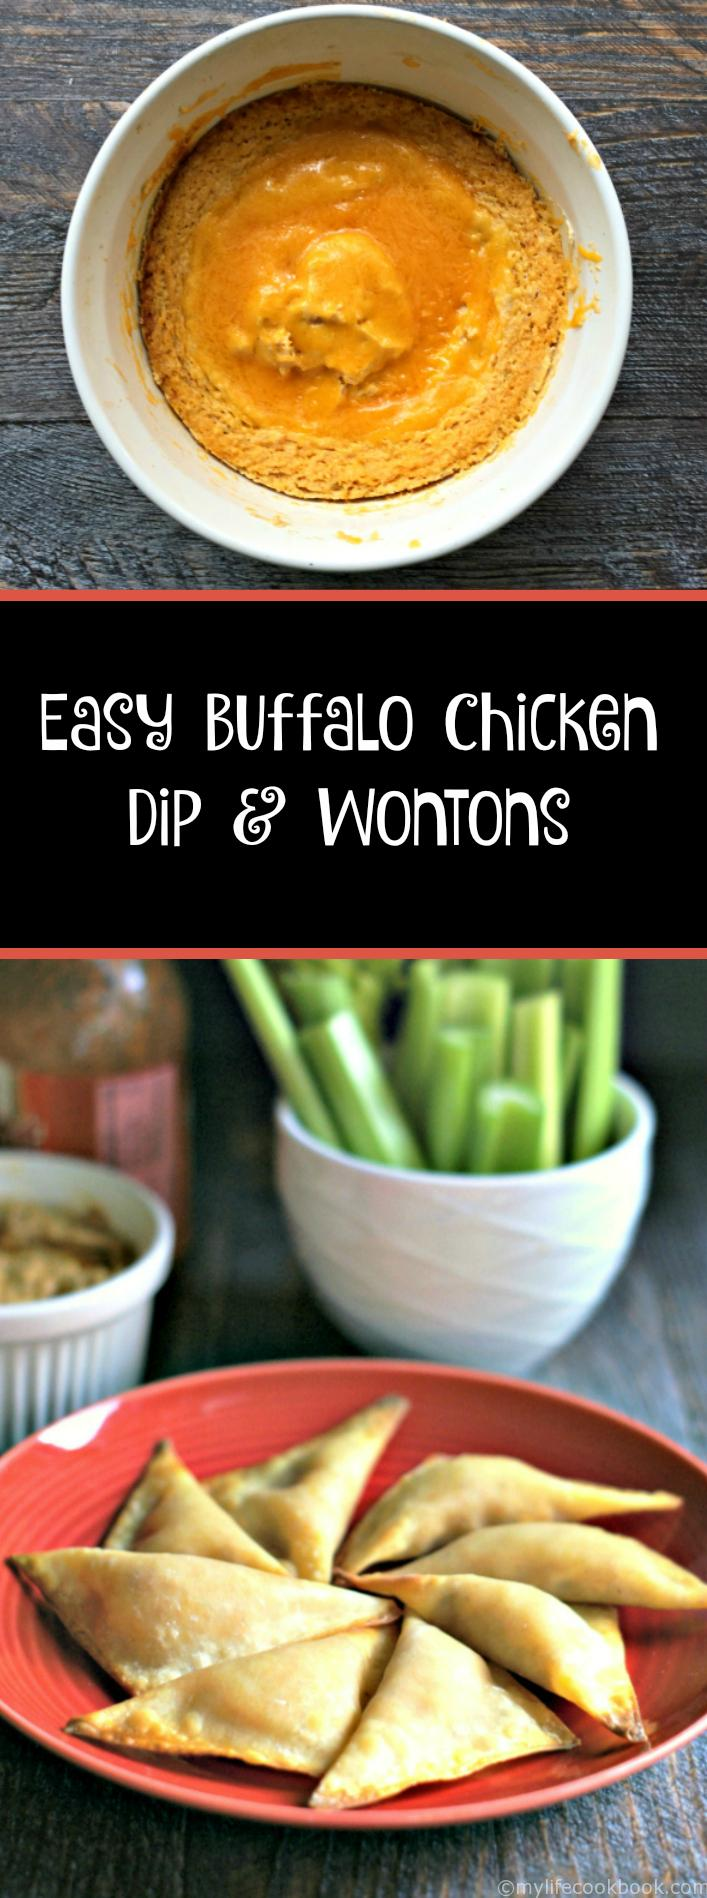 This easy buffalo chicken dip and wontons recipe is the perfect party food especially for game day parties.The wontons make great finger food and the dip can be used with veggies or chips.